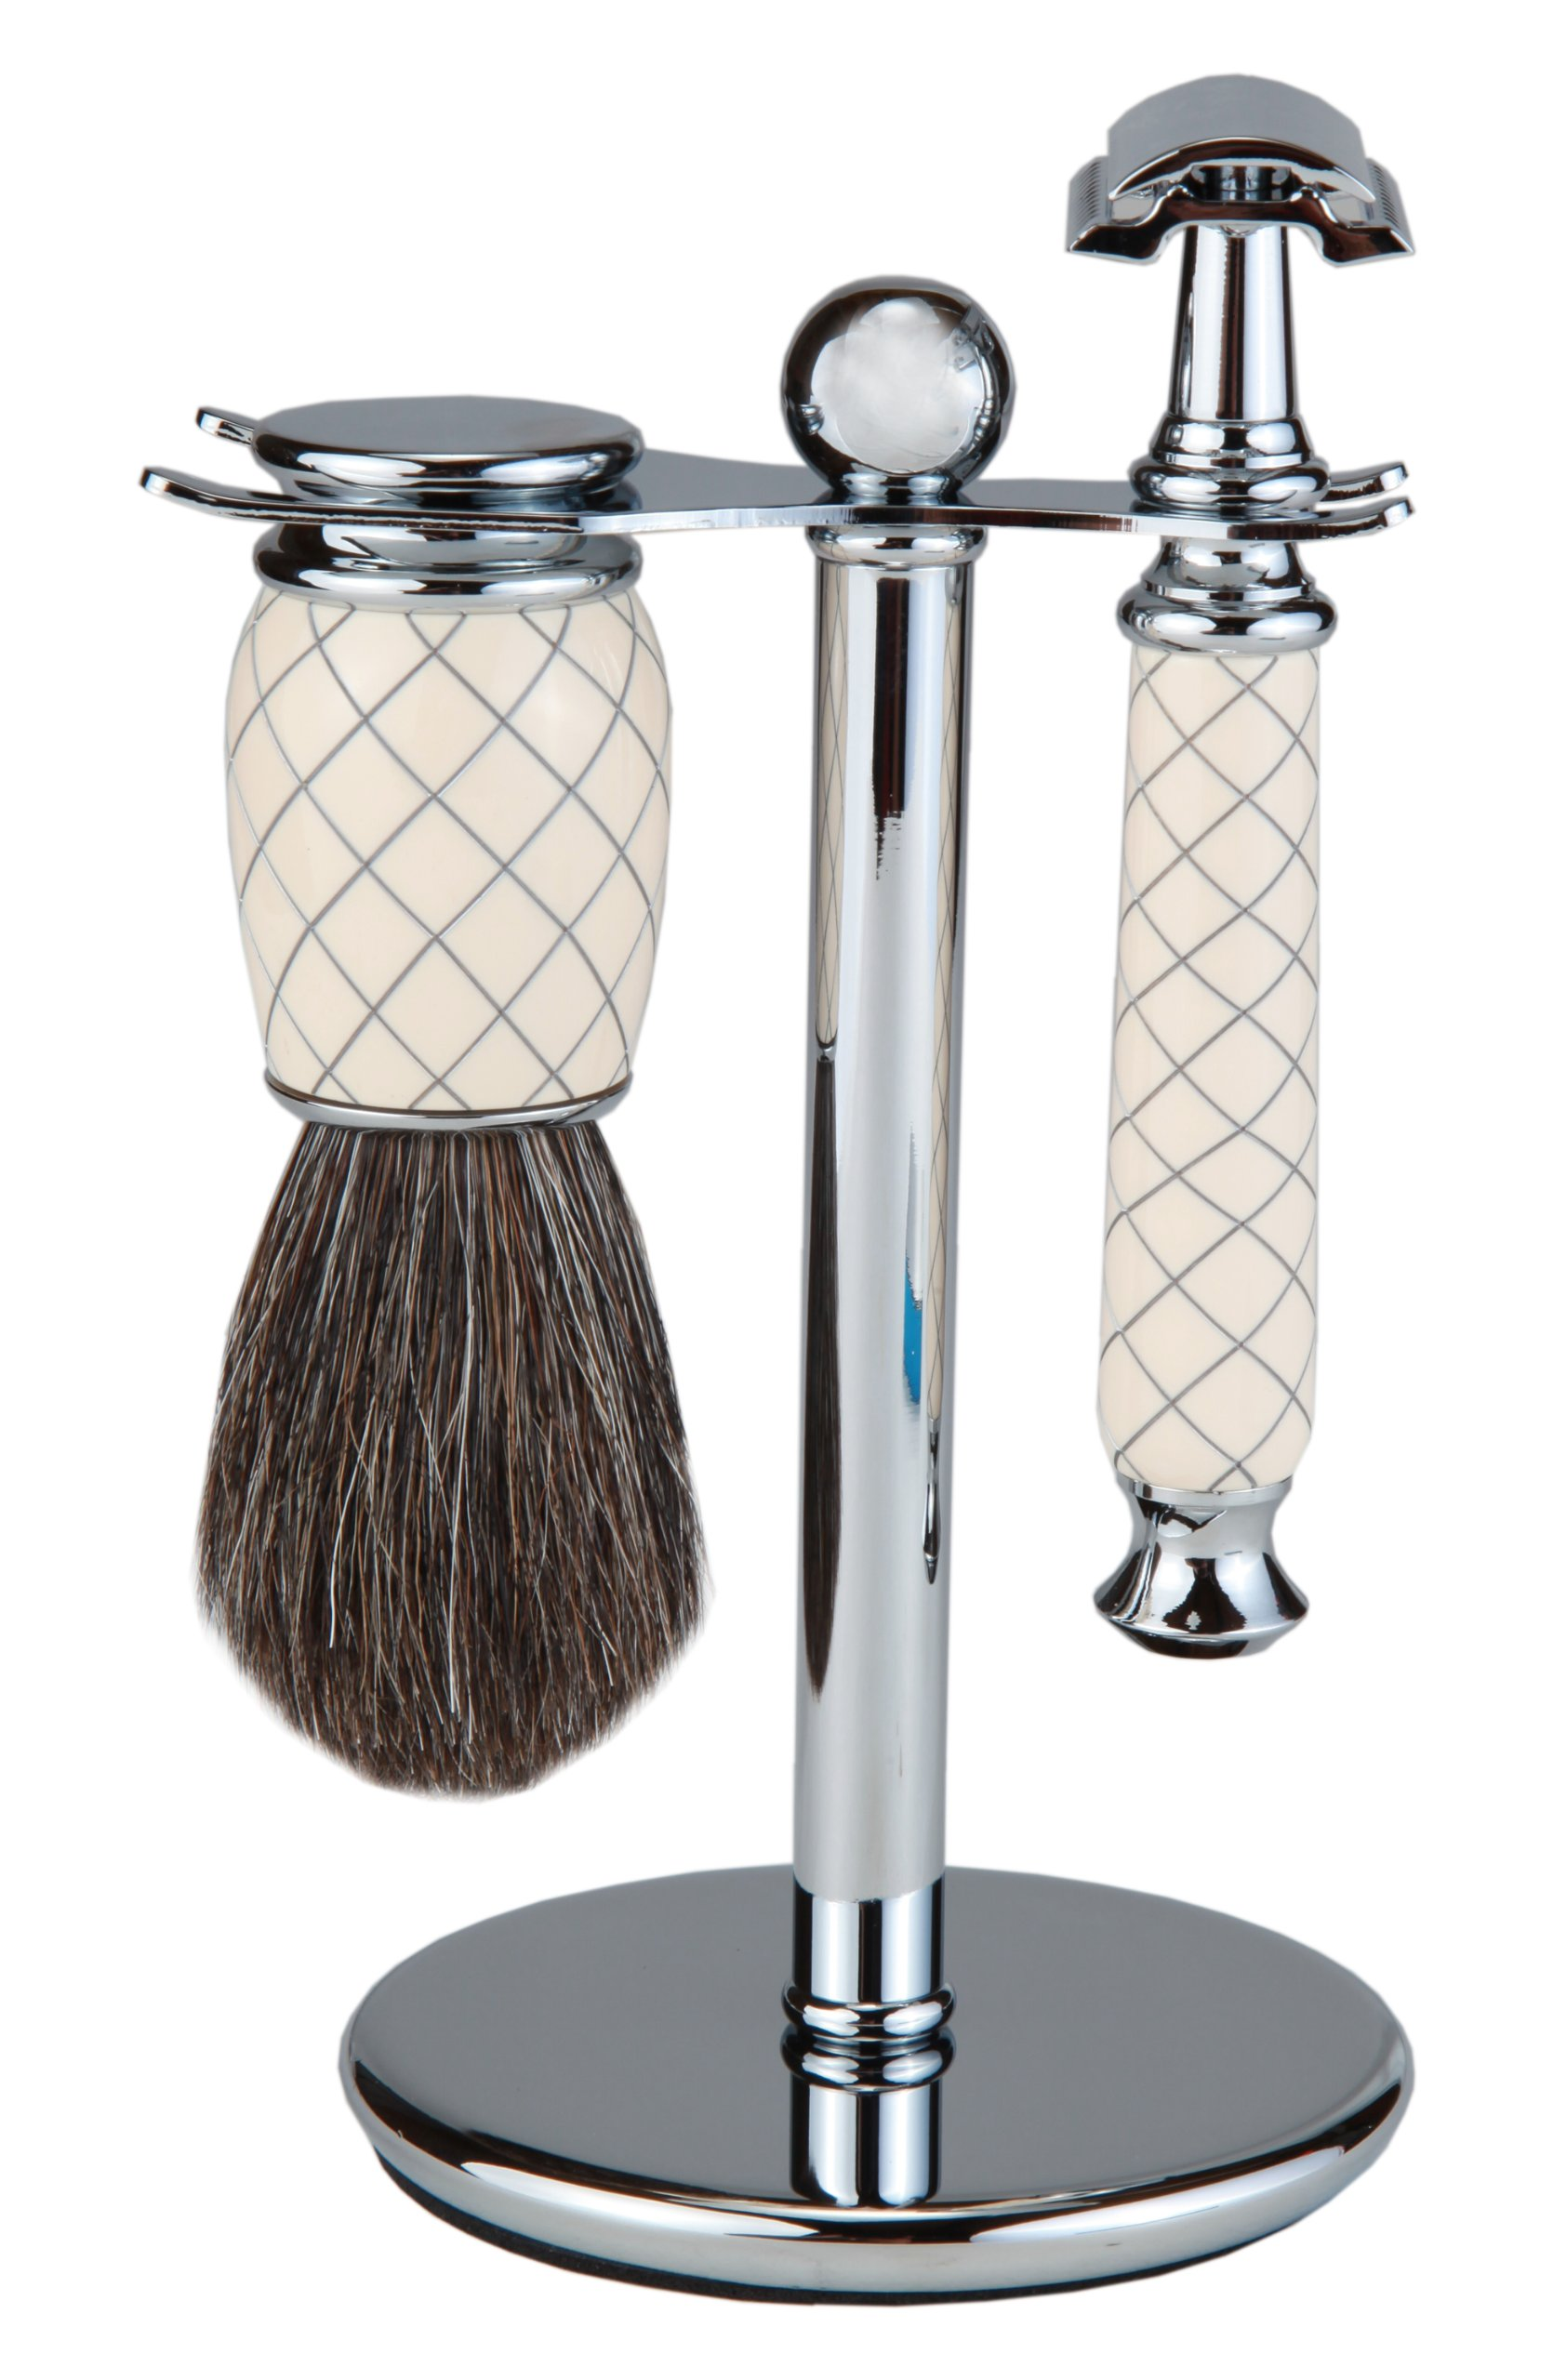 Shaving Gift Set With Safety Razor, 100% Badger Hair Shaving Brush, And All Metal Stand. Great Gift Item For Boyfriend, Husband, Or Father (White Criss Cross)